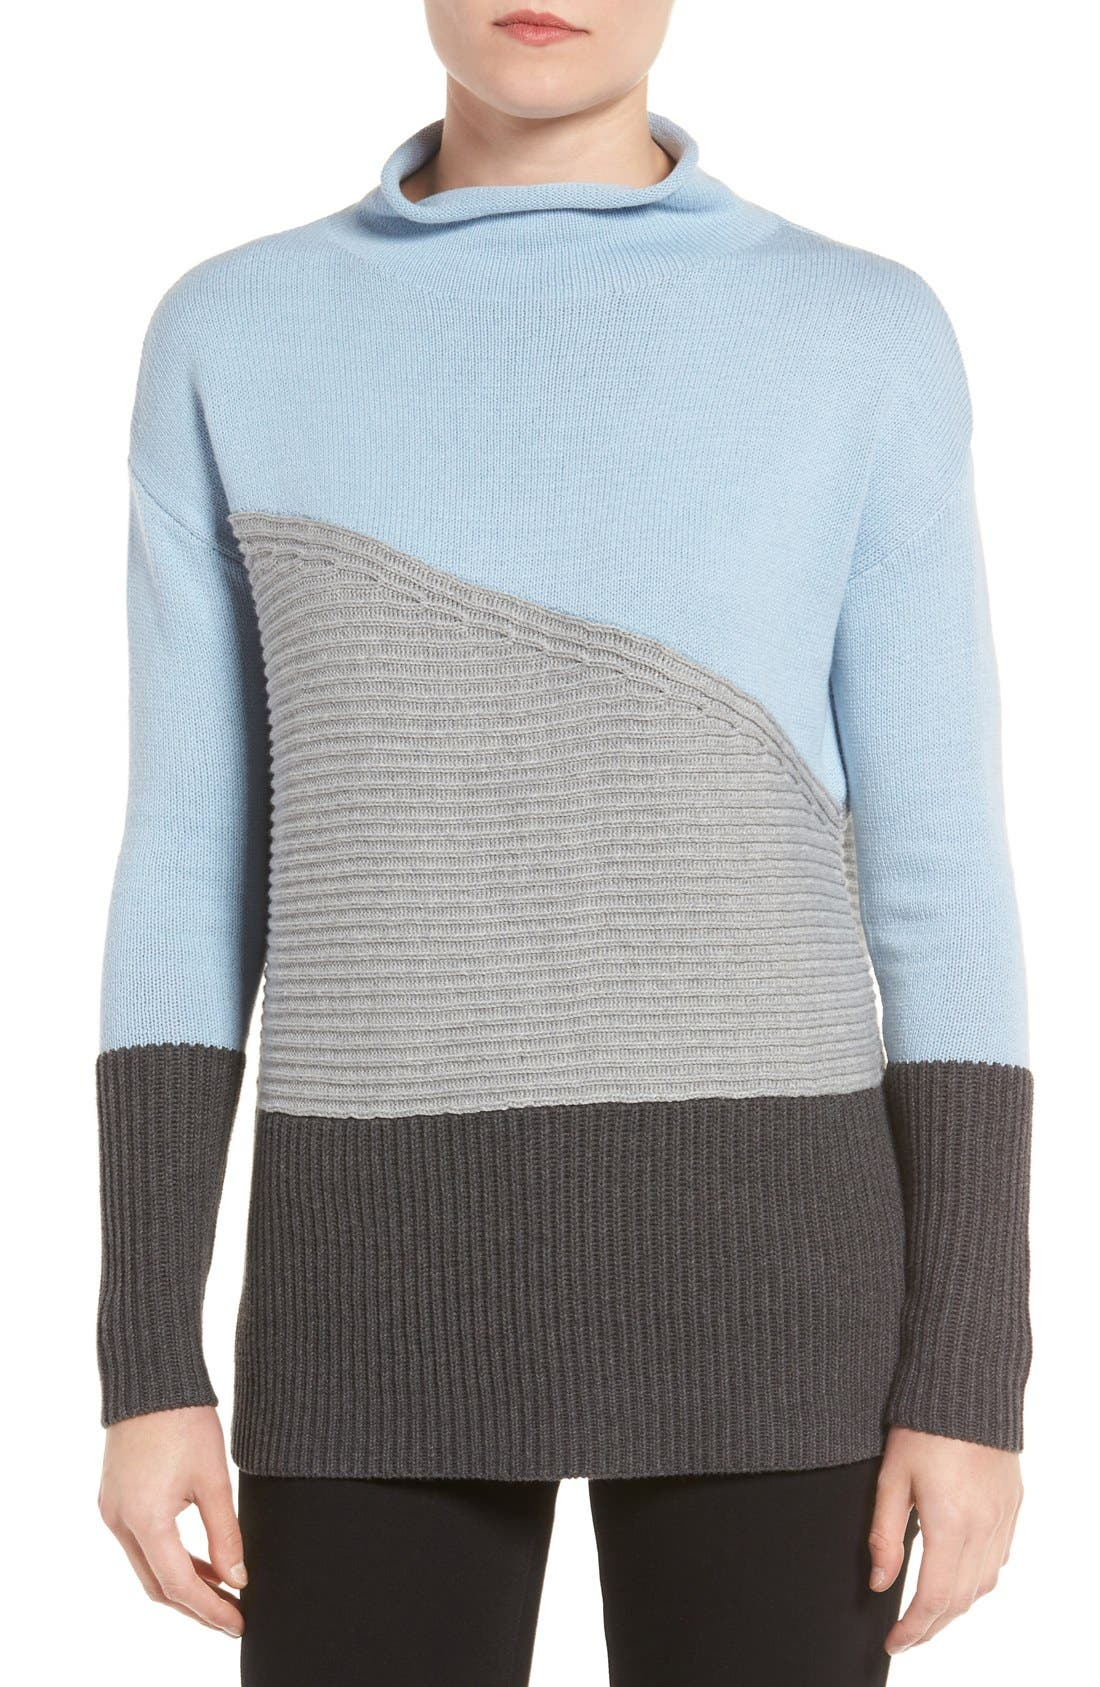 Alternate Image 1 Selected - Vince Camuto Colorblock Turtleneck Sweater (Regular & Petite)